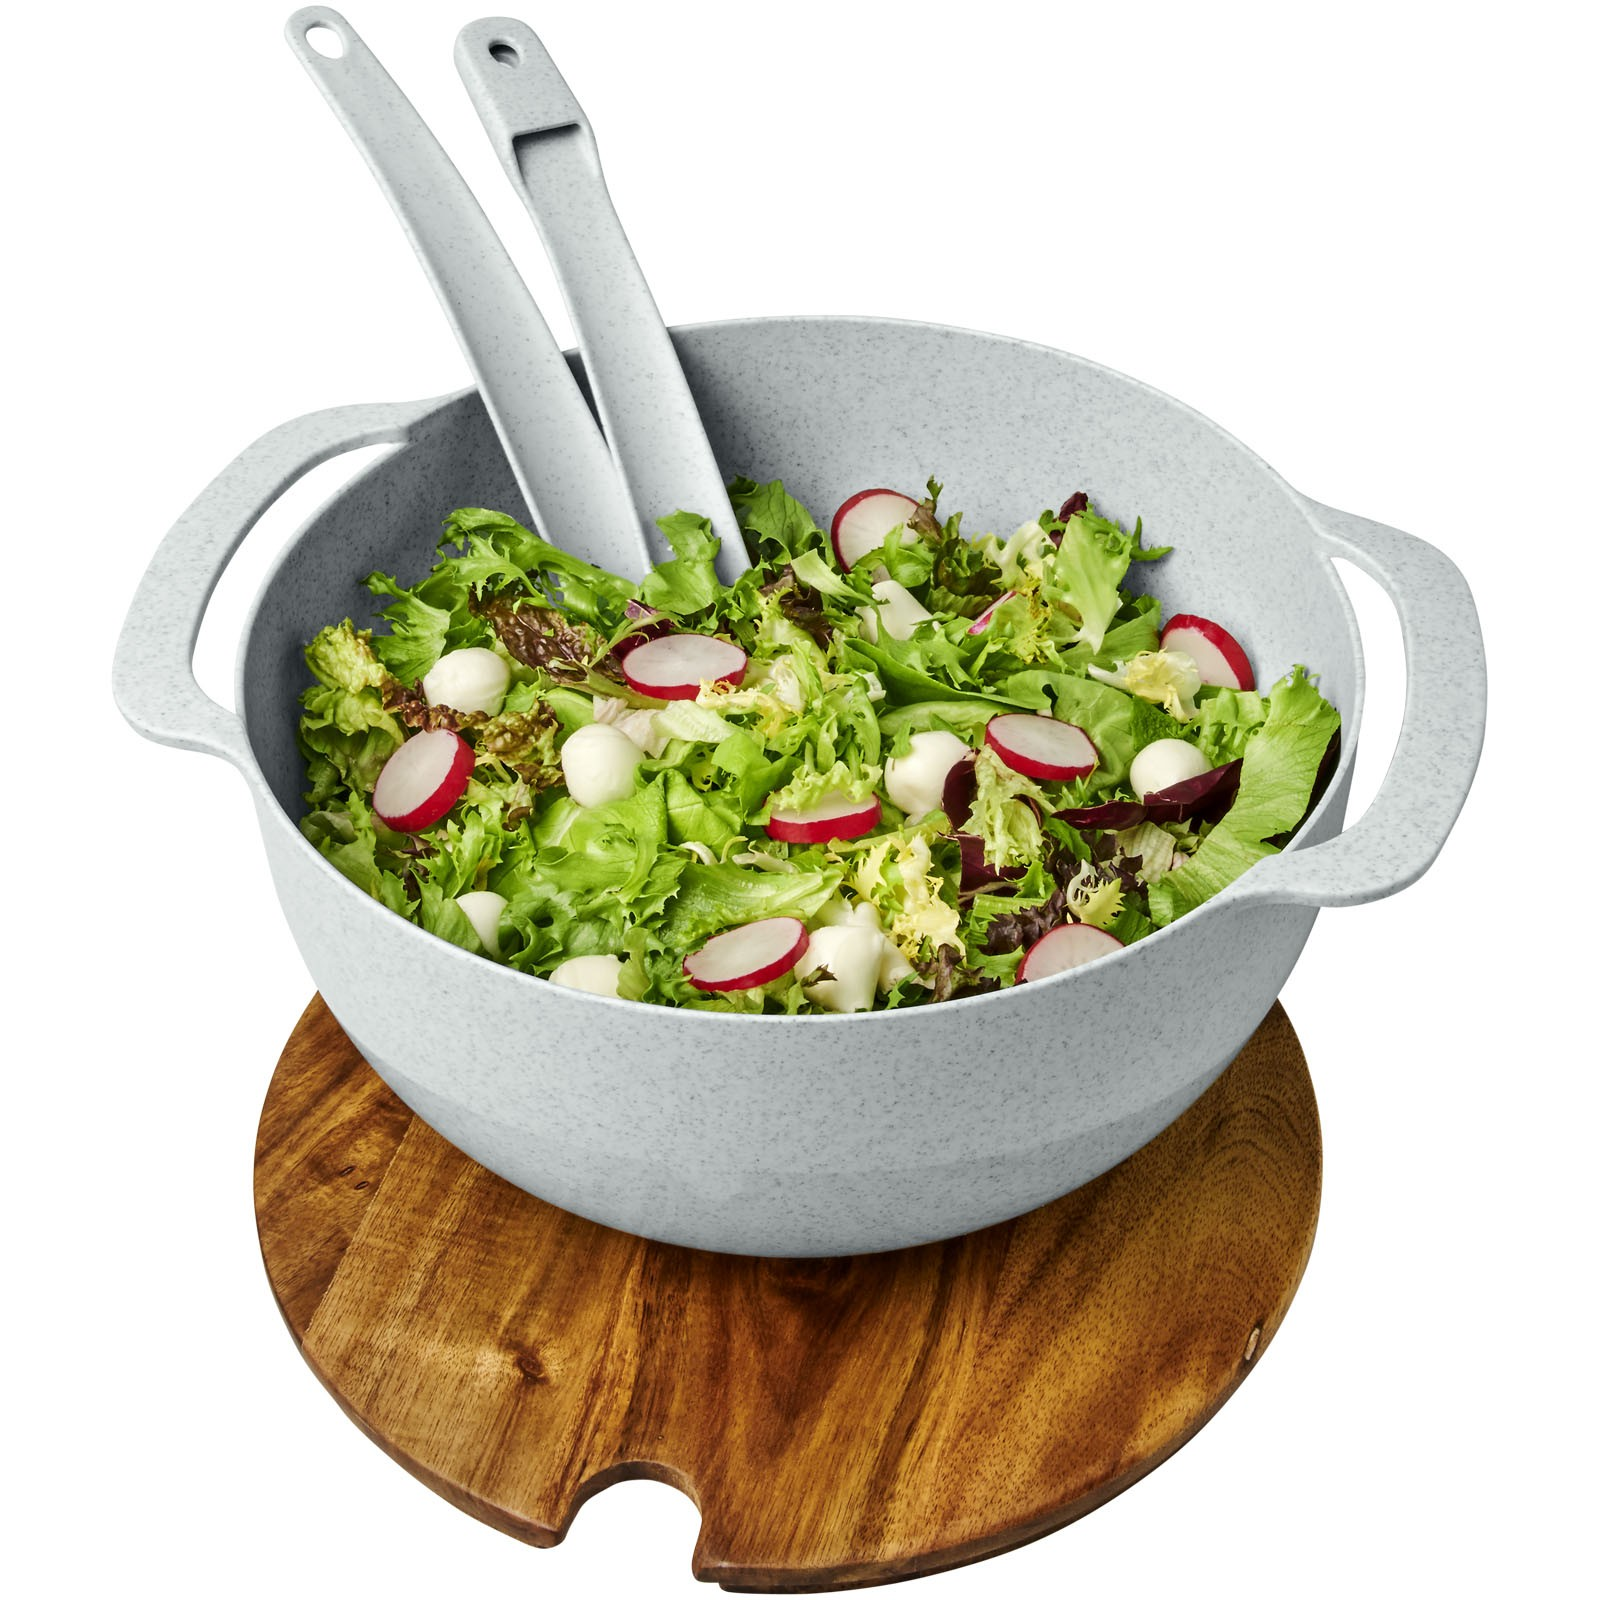 Lucha wheat straw salad bowl with servers - Grey